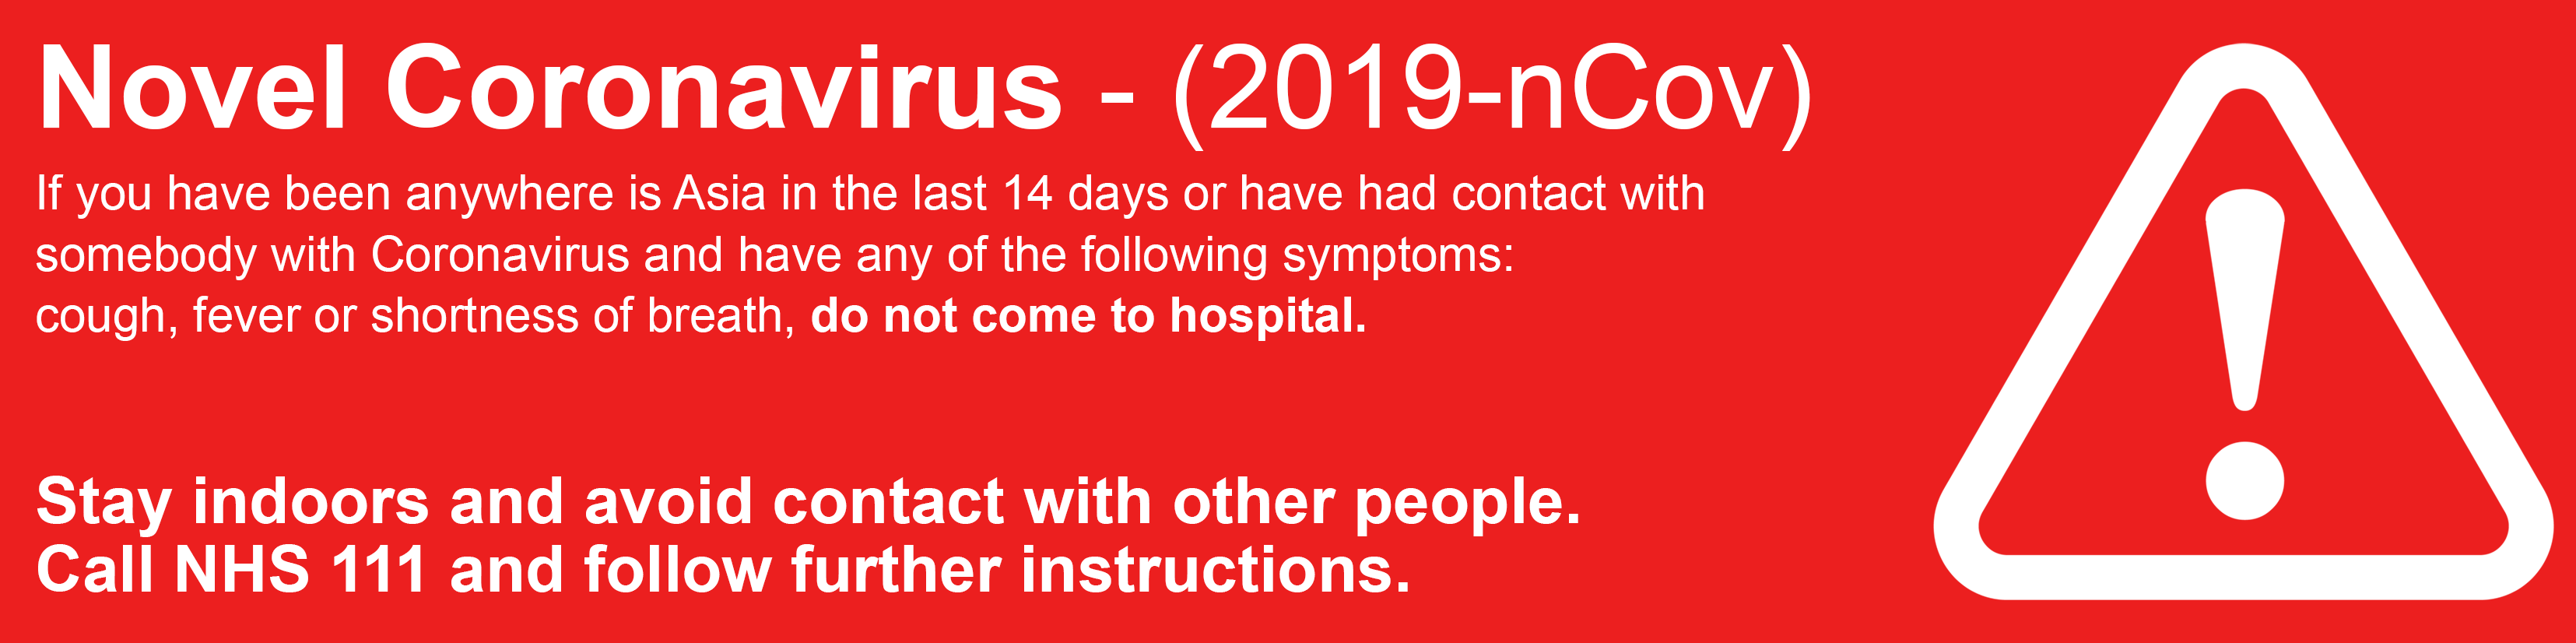 If you have been anywhere in Asia in the last 14 days or have had contact with somebody with Coronavirus and have any of the following symptoms: Cough, Fever or Shortness of breath, do not come to hospital. Stay indoors and avoid contact with other people. Call NHS 111 and follow further instructions.